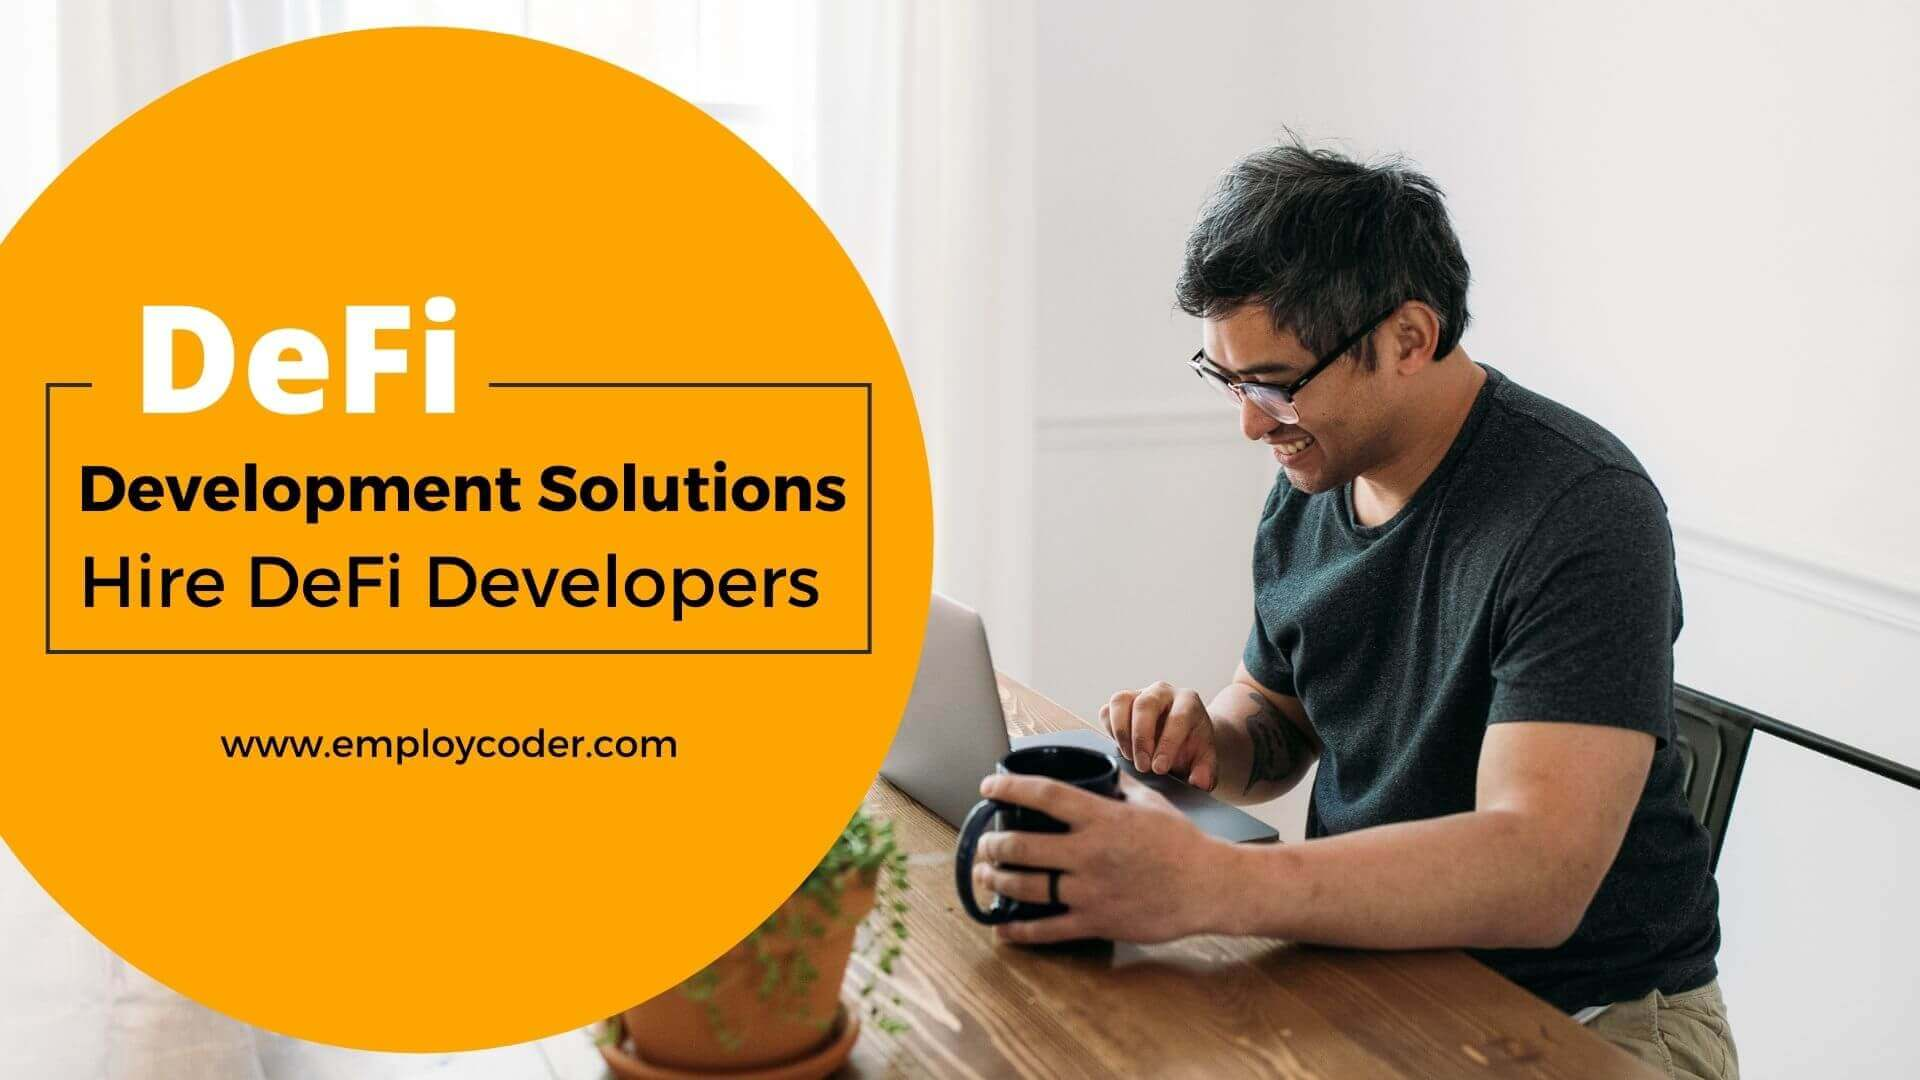 Hire DeFi Developers For All Your DeFi Development Projects